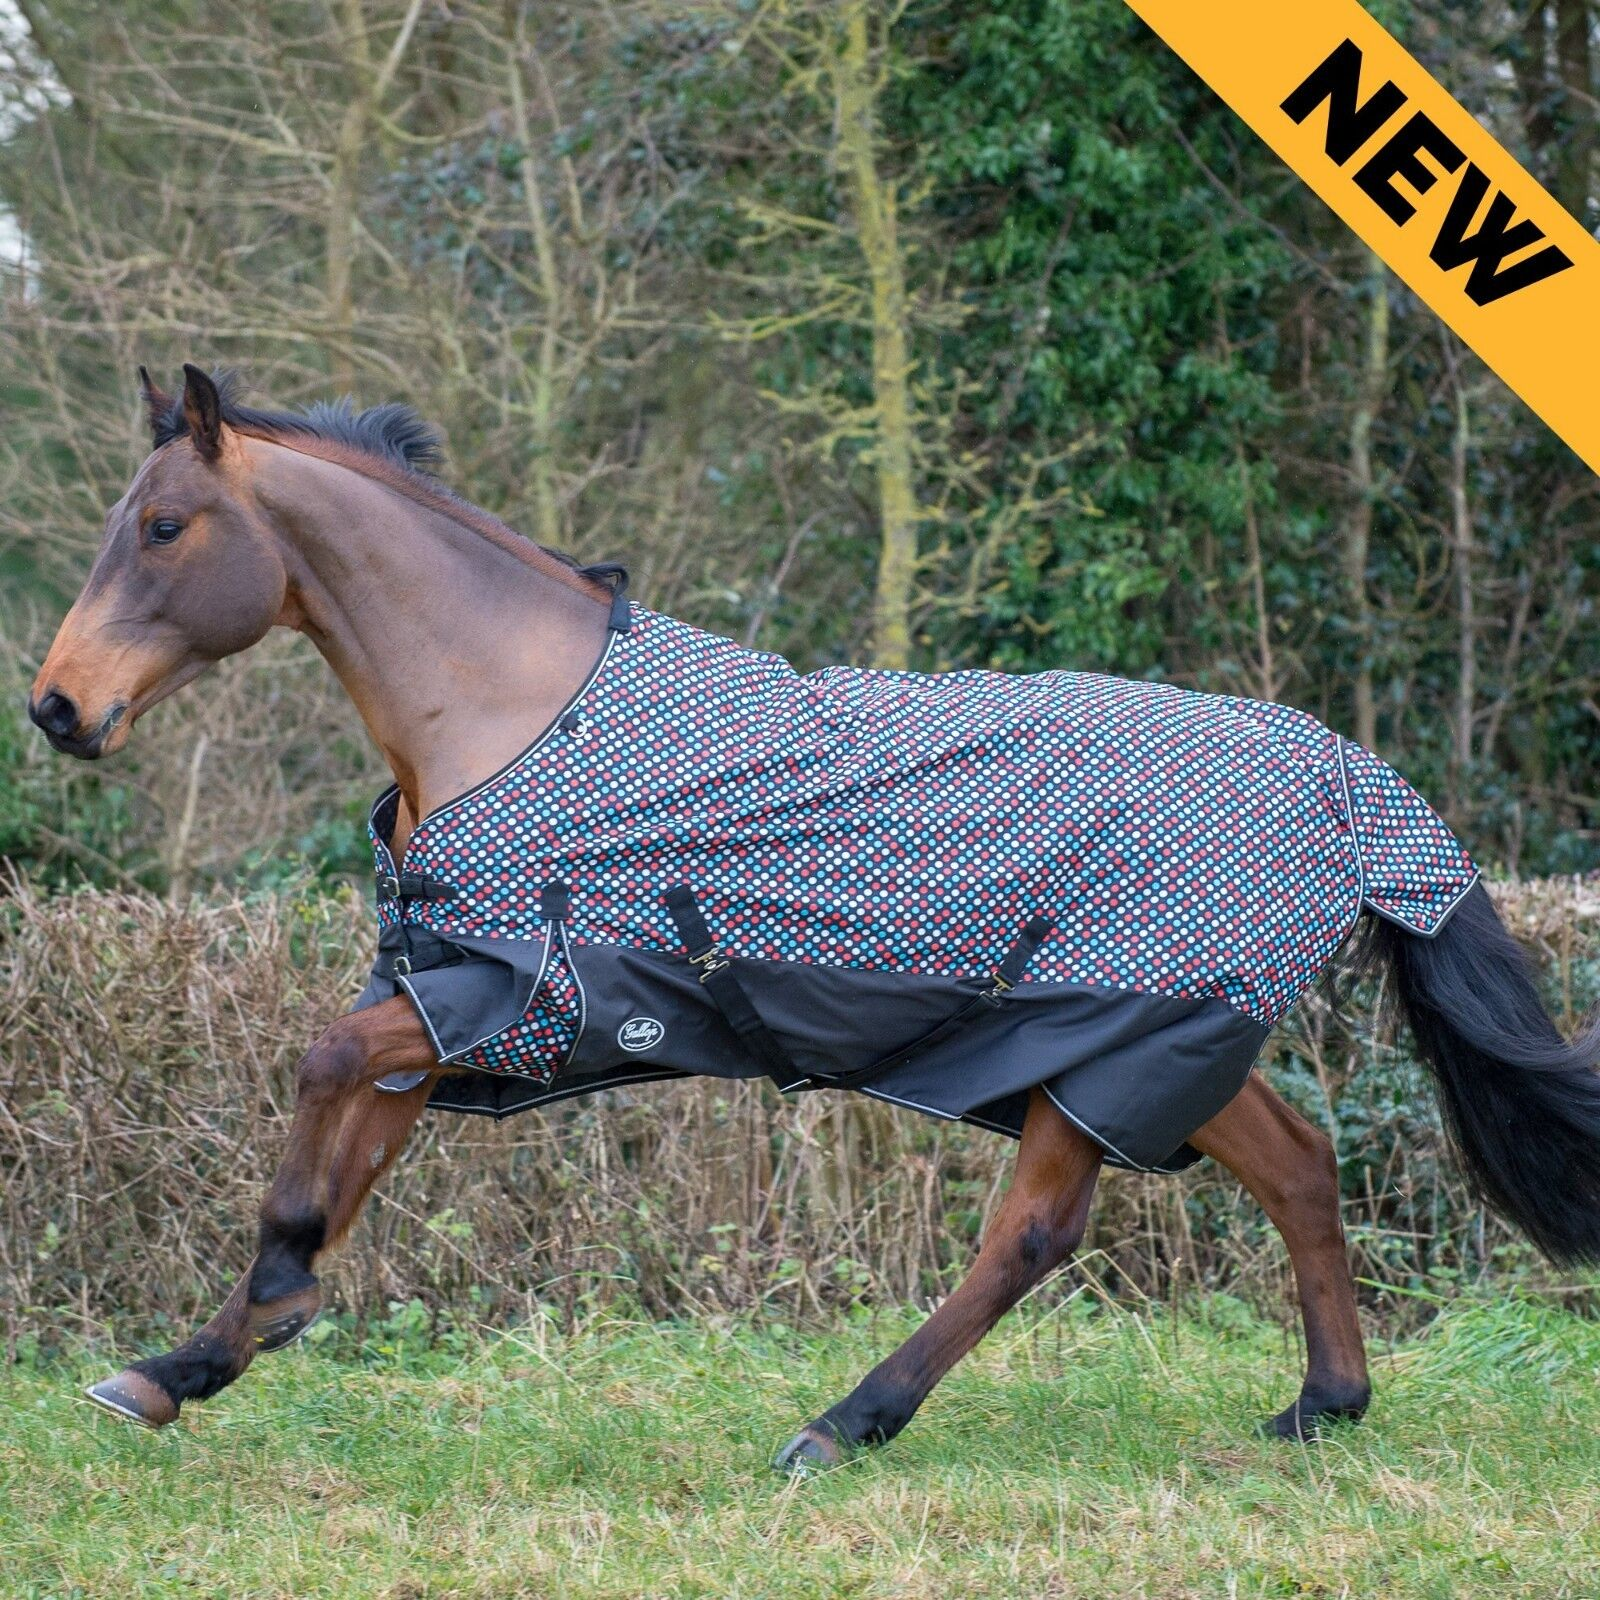 GALLOP Lightweight Horse Turnout Rug - Polka Dot - All Sizes Waterproof No Fill